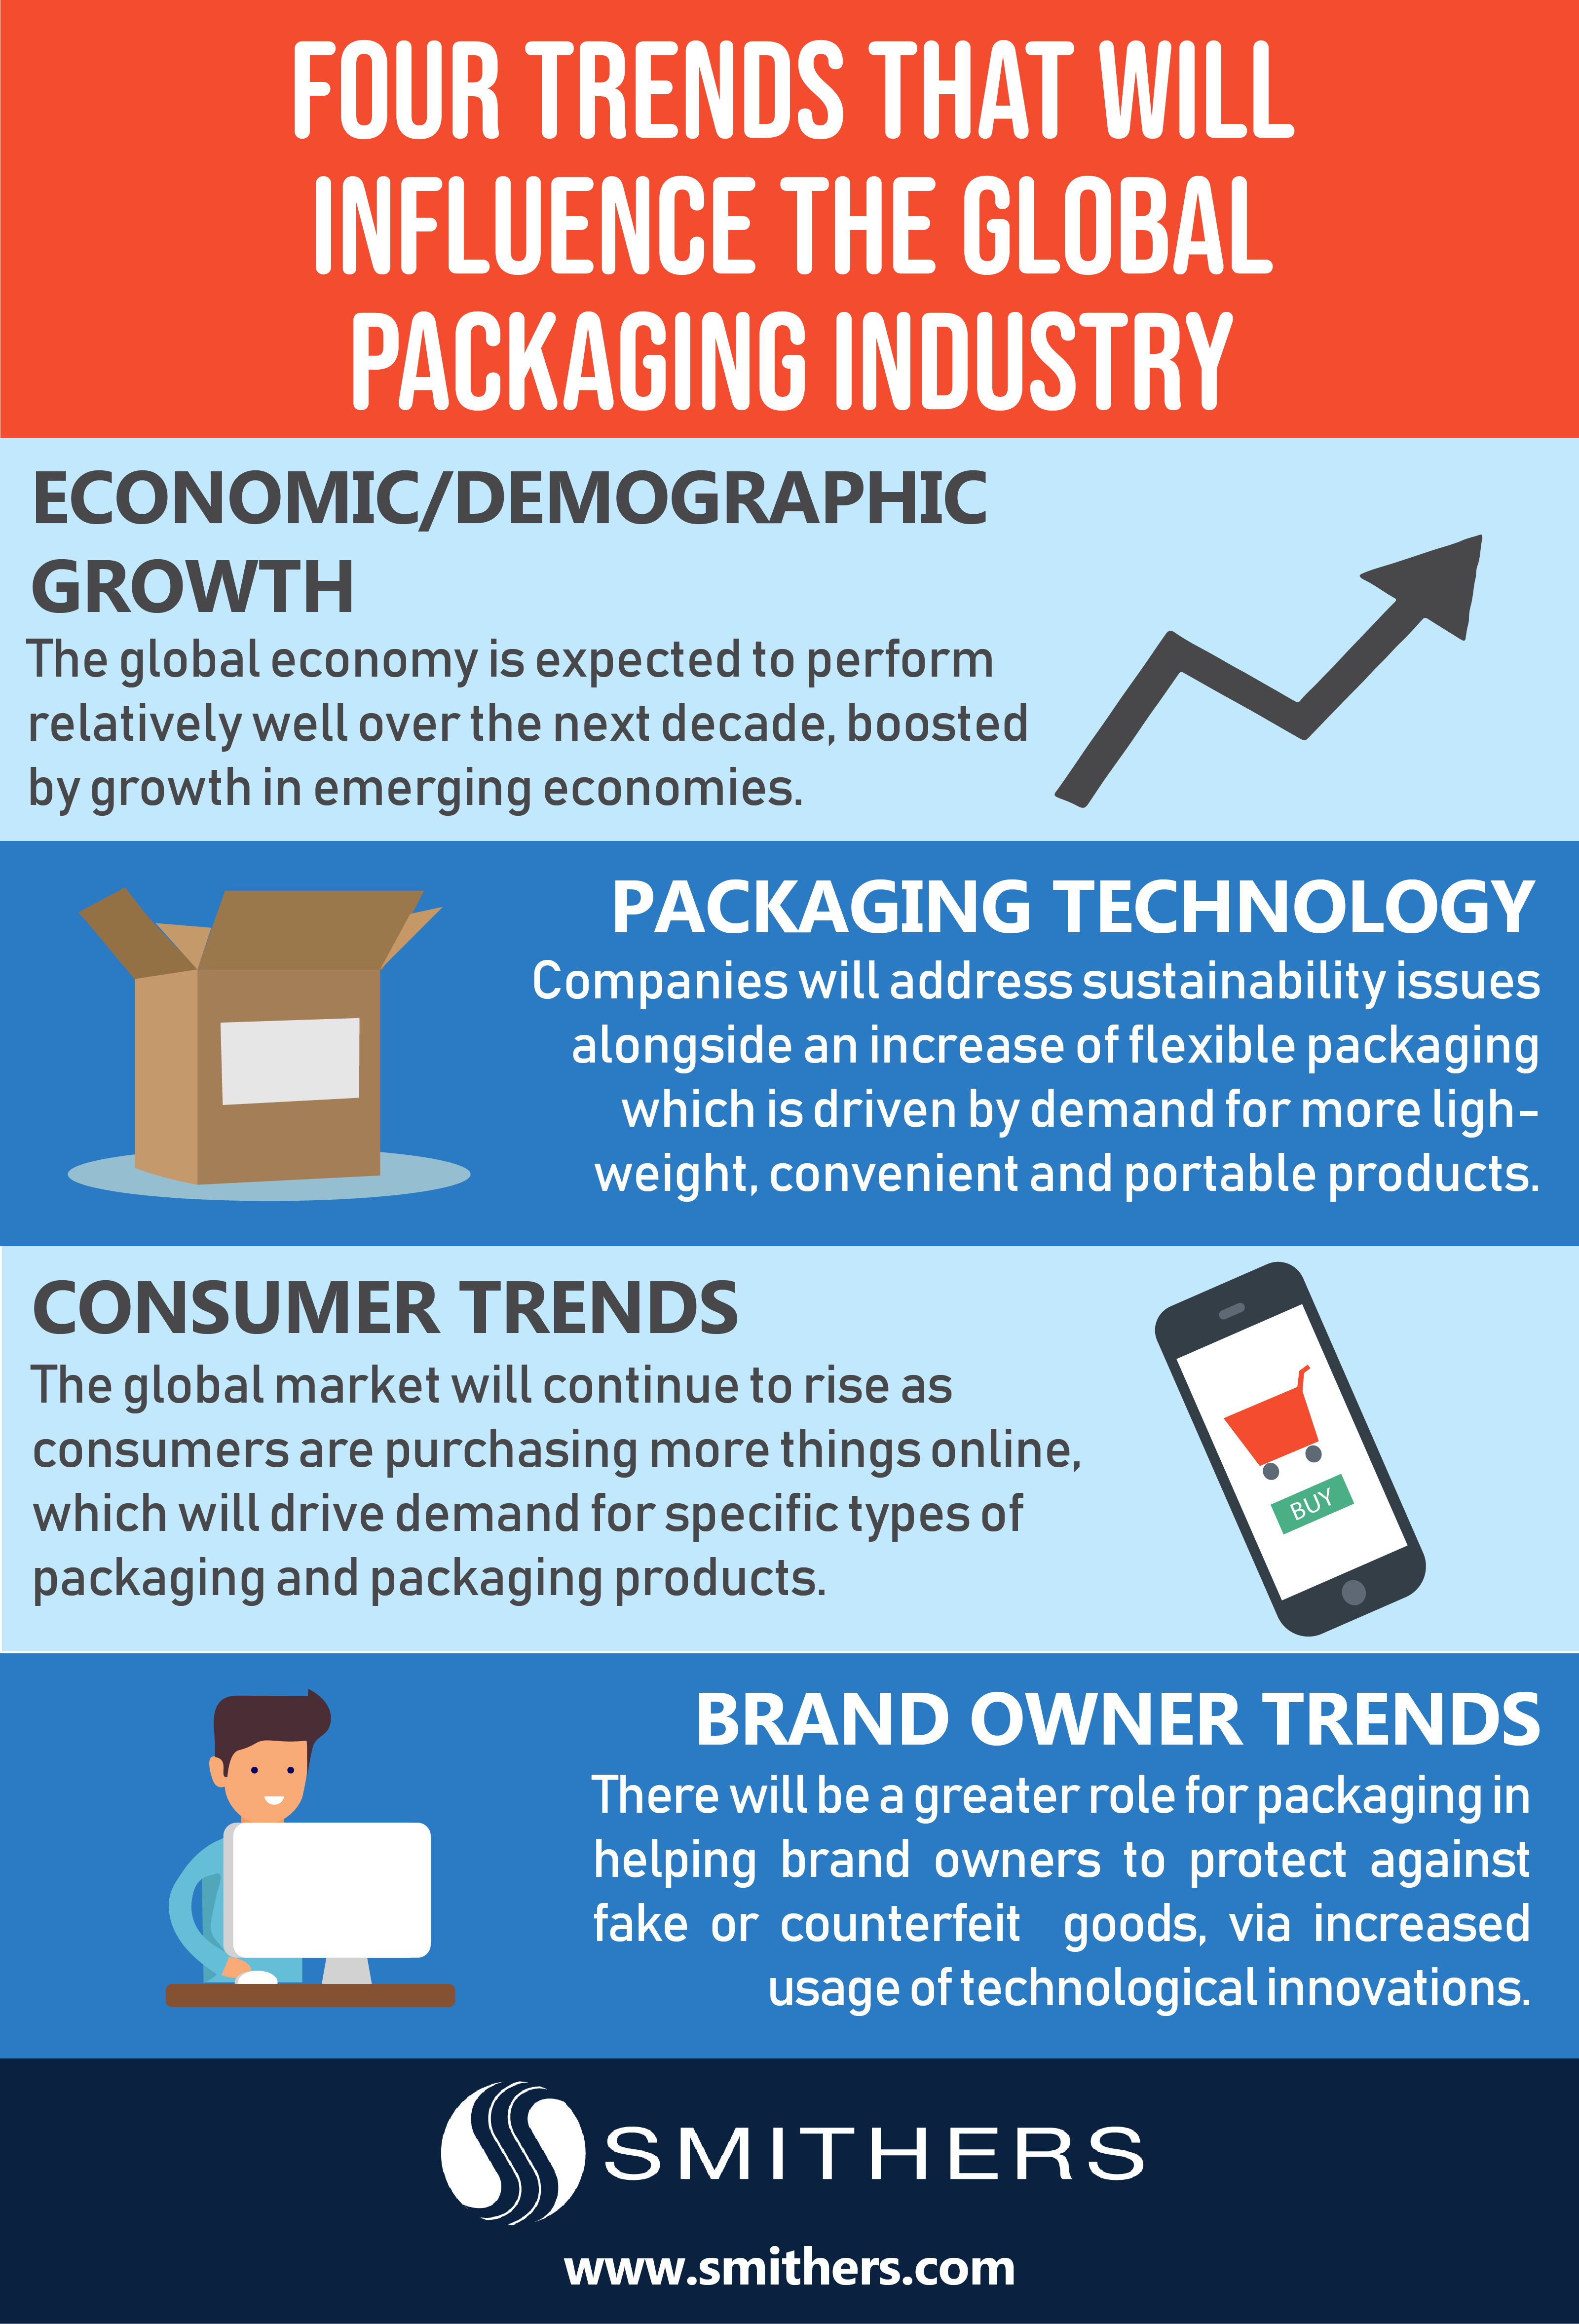 smithers infographic on packaging trends